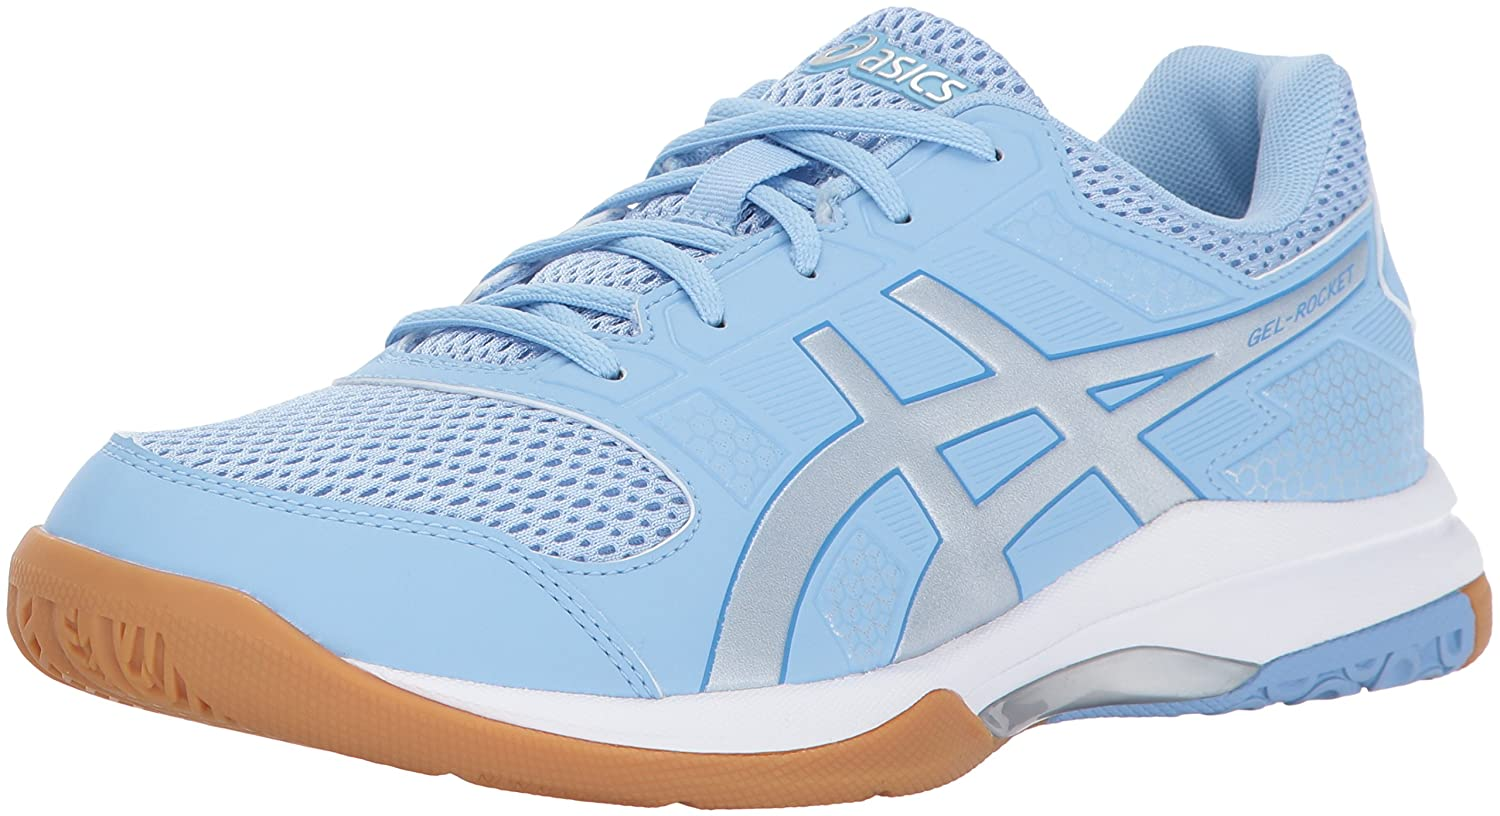 ASICS Women's Gel-Rocket 8 Volleyball Shoe B01N07HLY3 11.5 B(M) US|Airy Blue/Silver/White